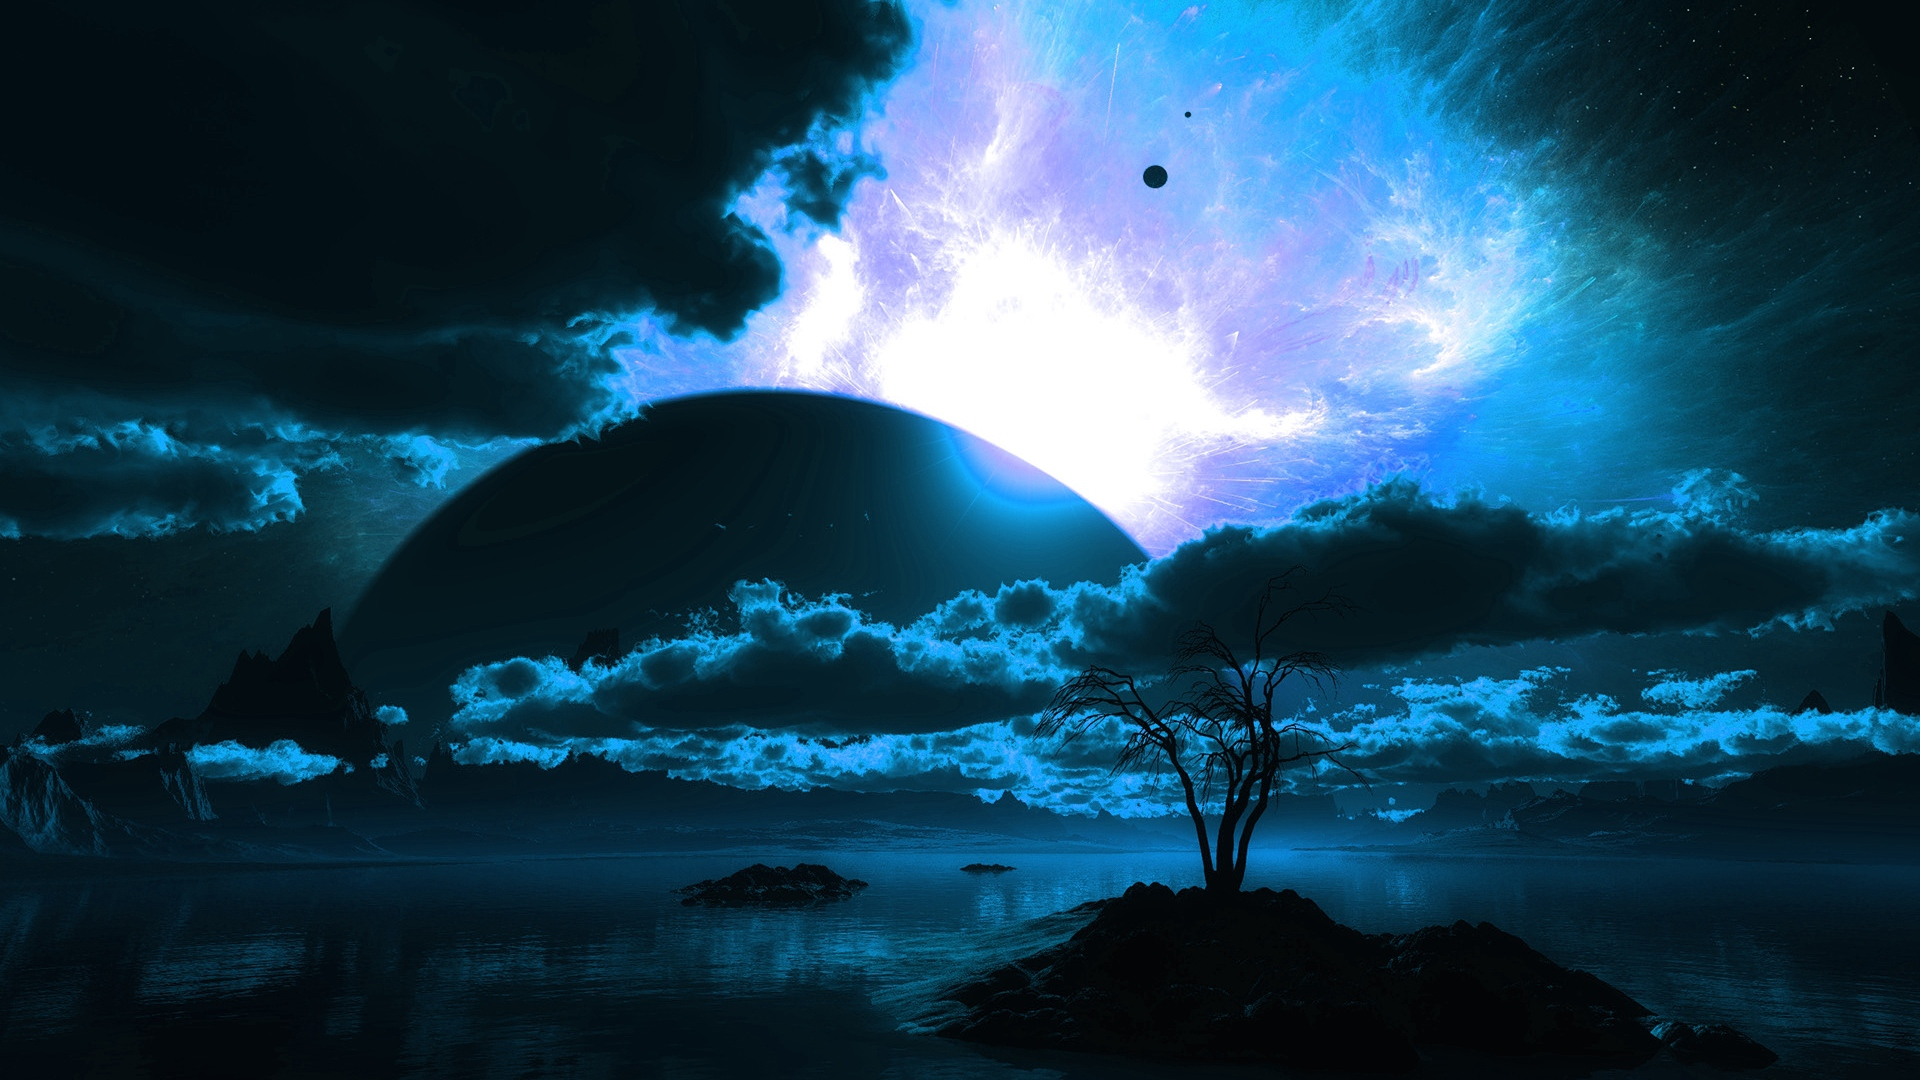 10 Latest Cool Laptop Backgrounds Space Full Hd 1920 1080: HD Backgrounds 1920x1080